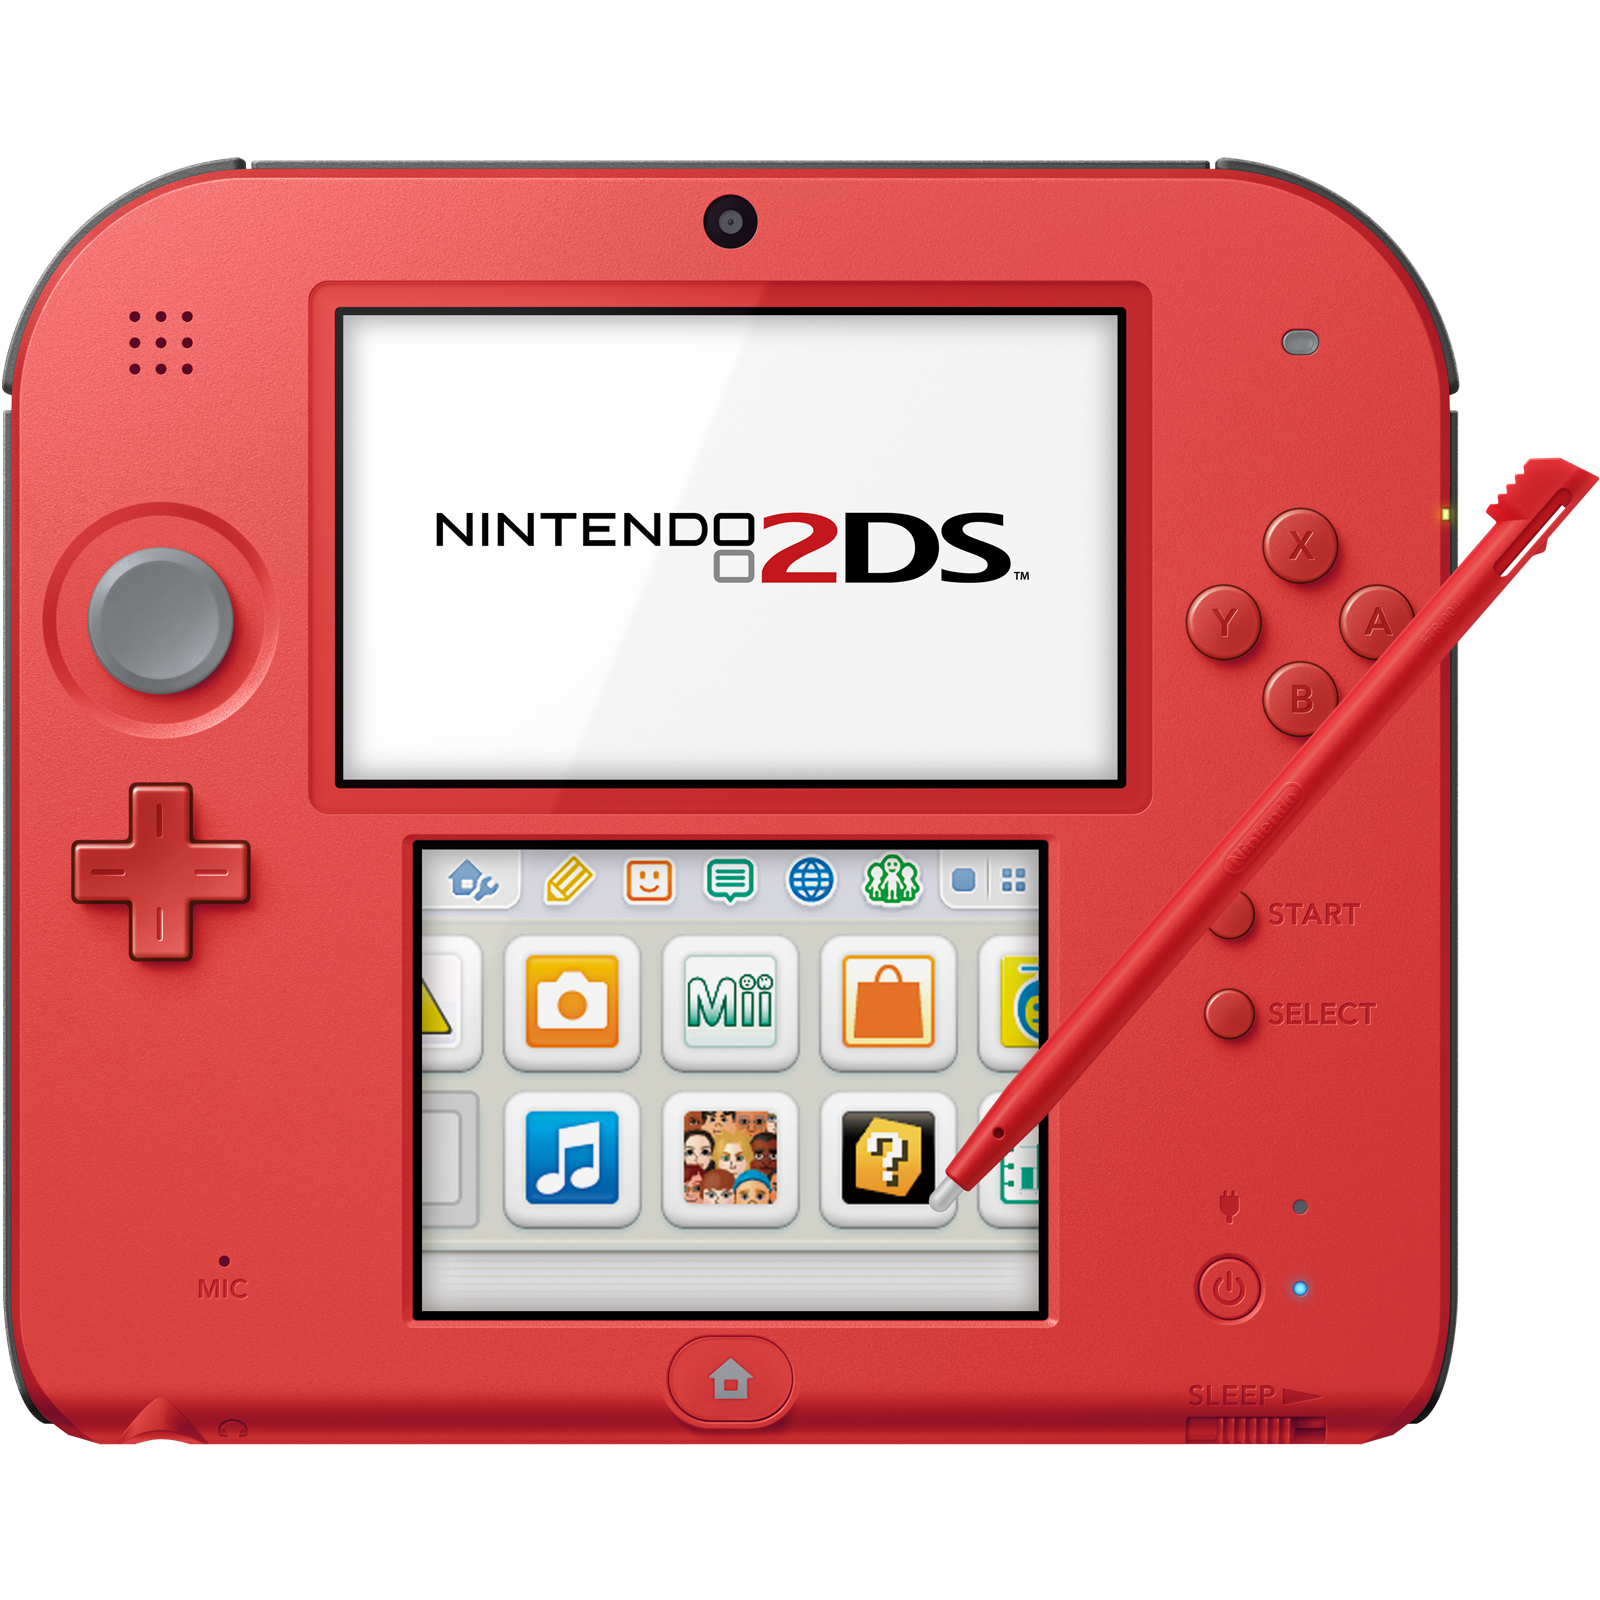 Nintendo 2ds Crimson Red 2 Factory Refurbished By Nintendo Nintendo 2ds Video Game Console Nintendo